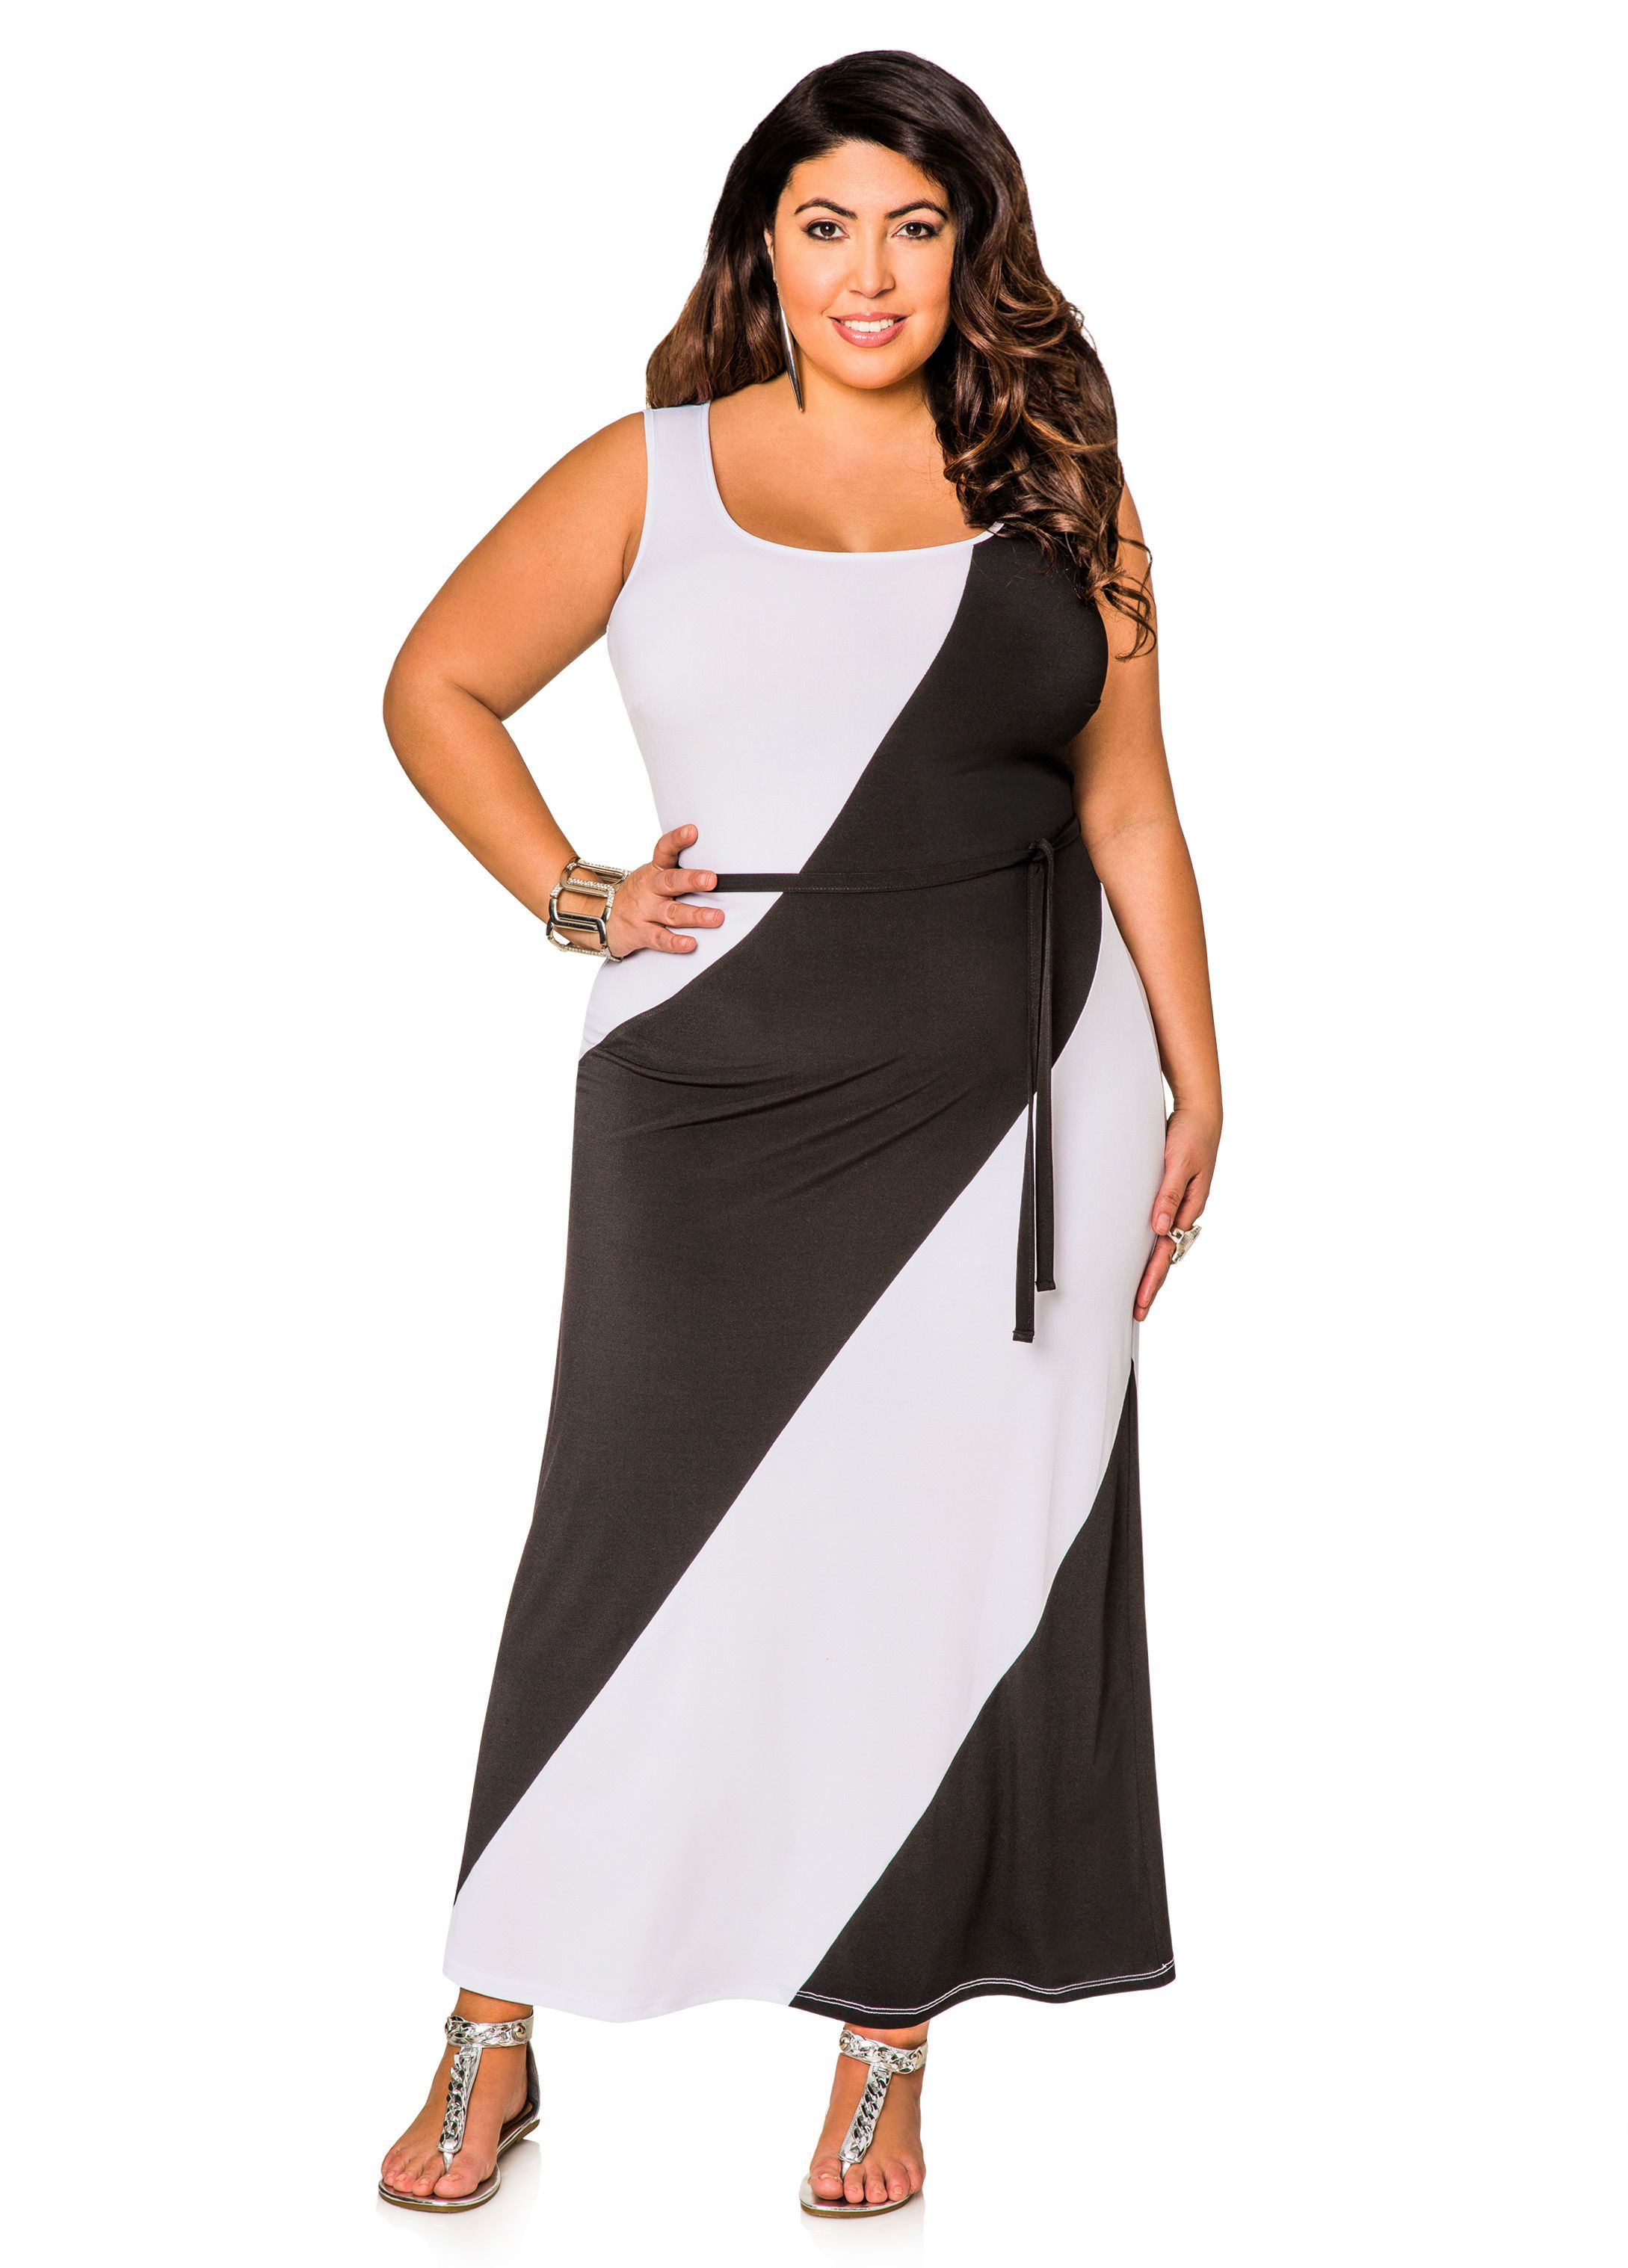 Slenderizing plus size dresses